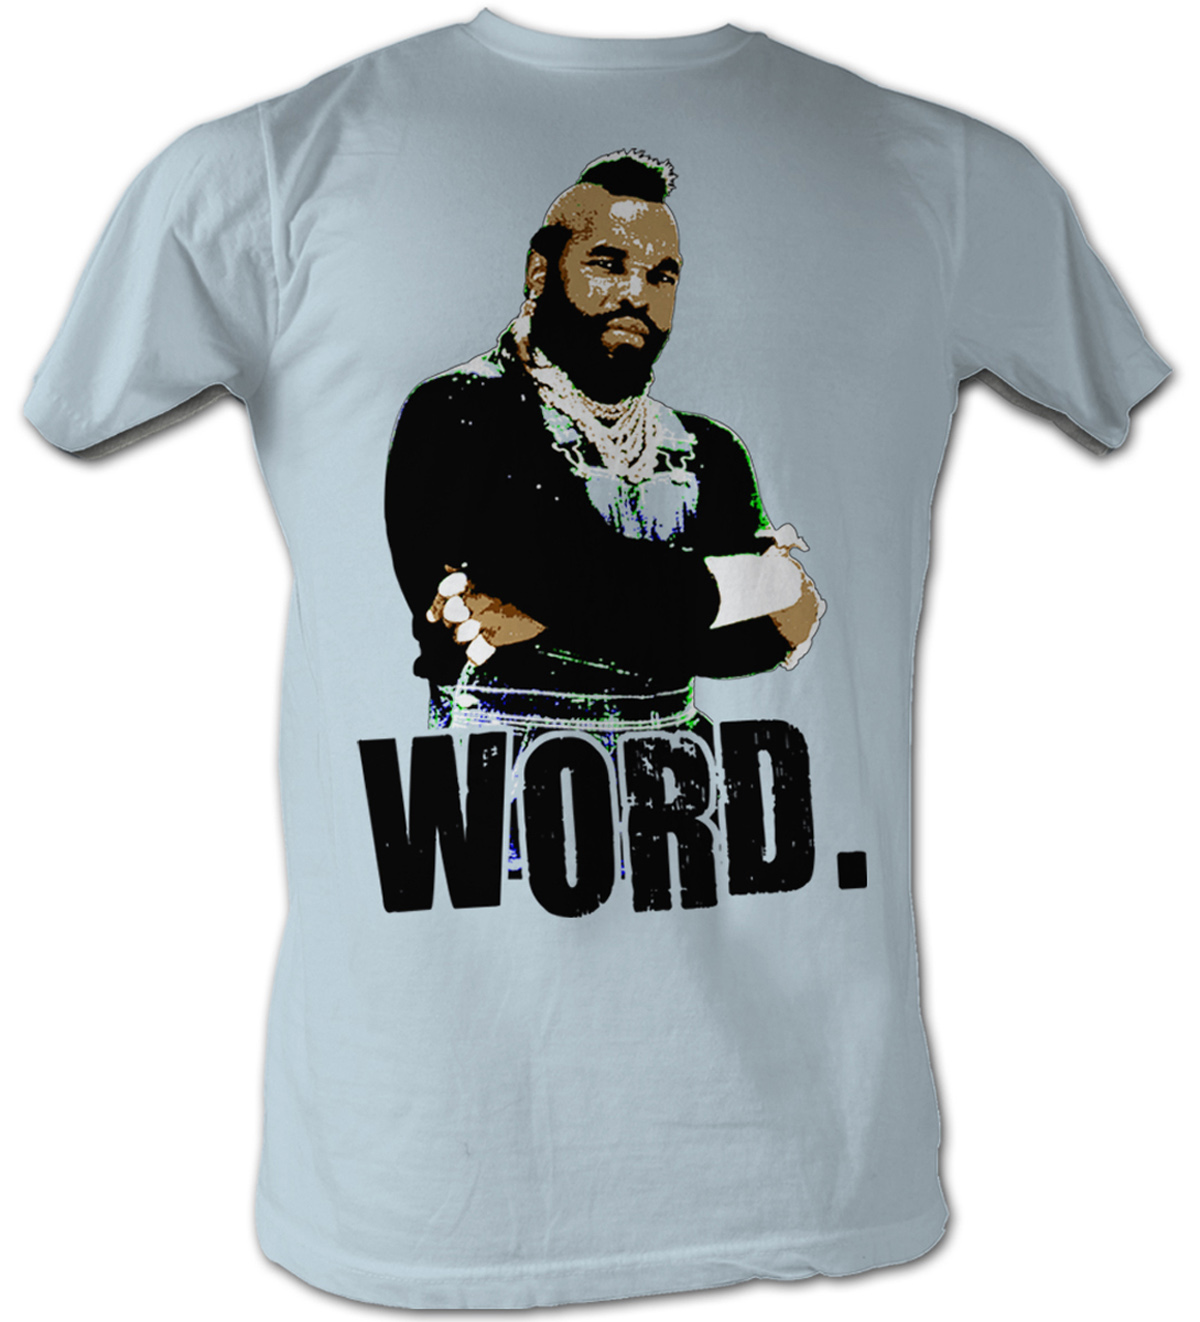 mr t t shirt word a team adult light blue tee shirt mr t shirts. Black Bedroom Furniture Sets. Home Design Ideas